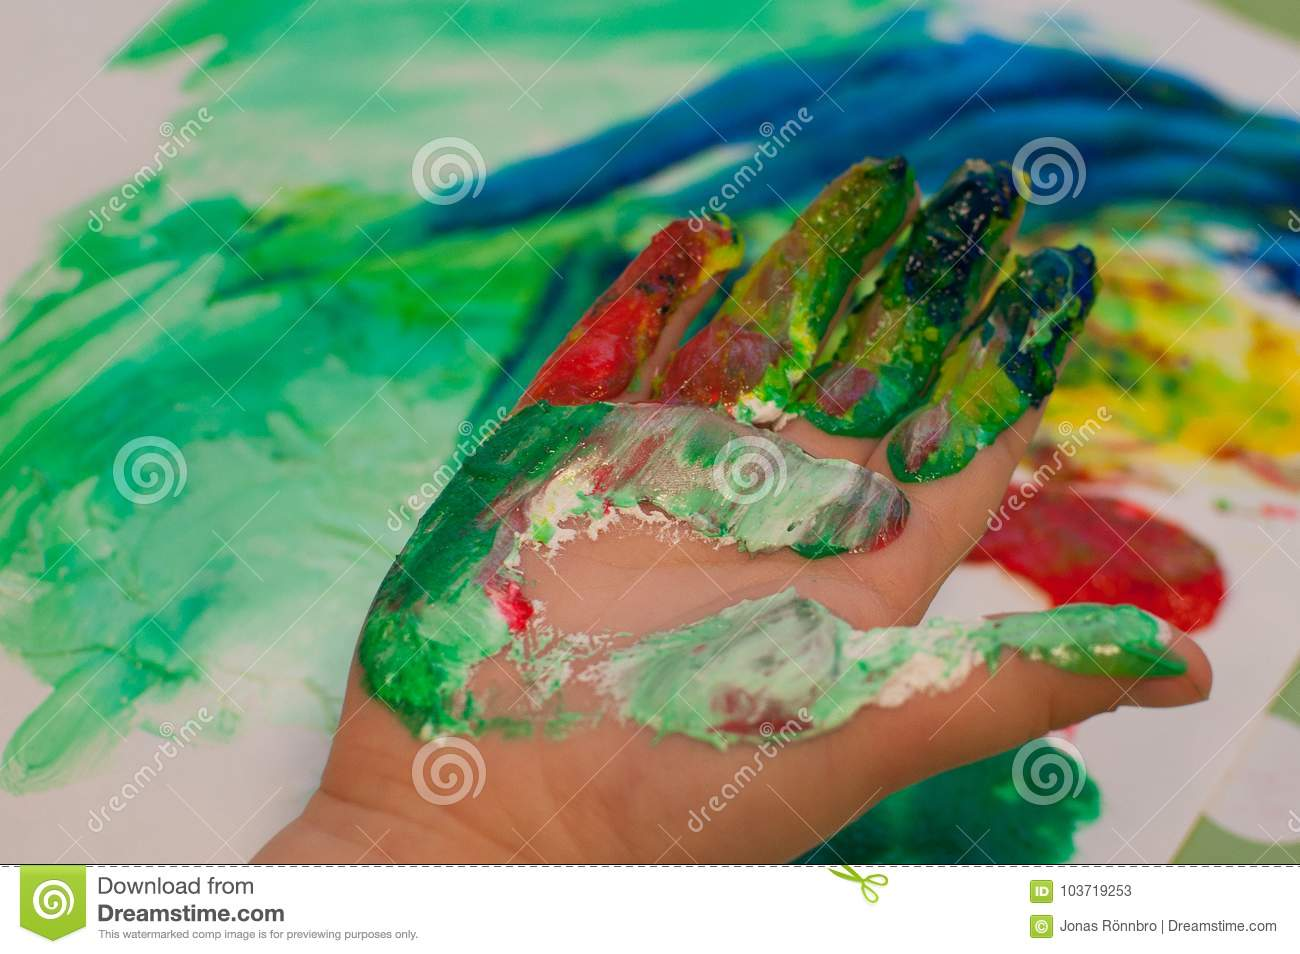 Children Painting With Pinger Paint Stock Image - Image of play